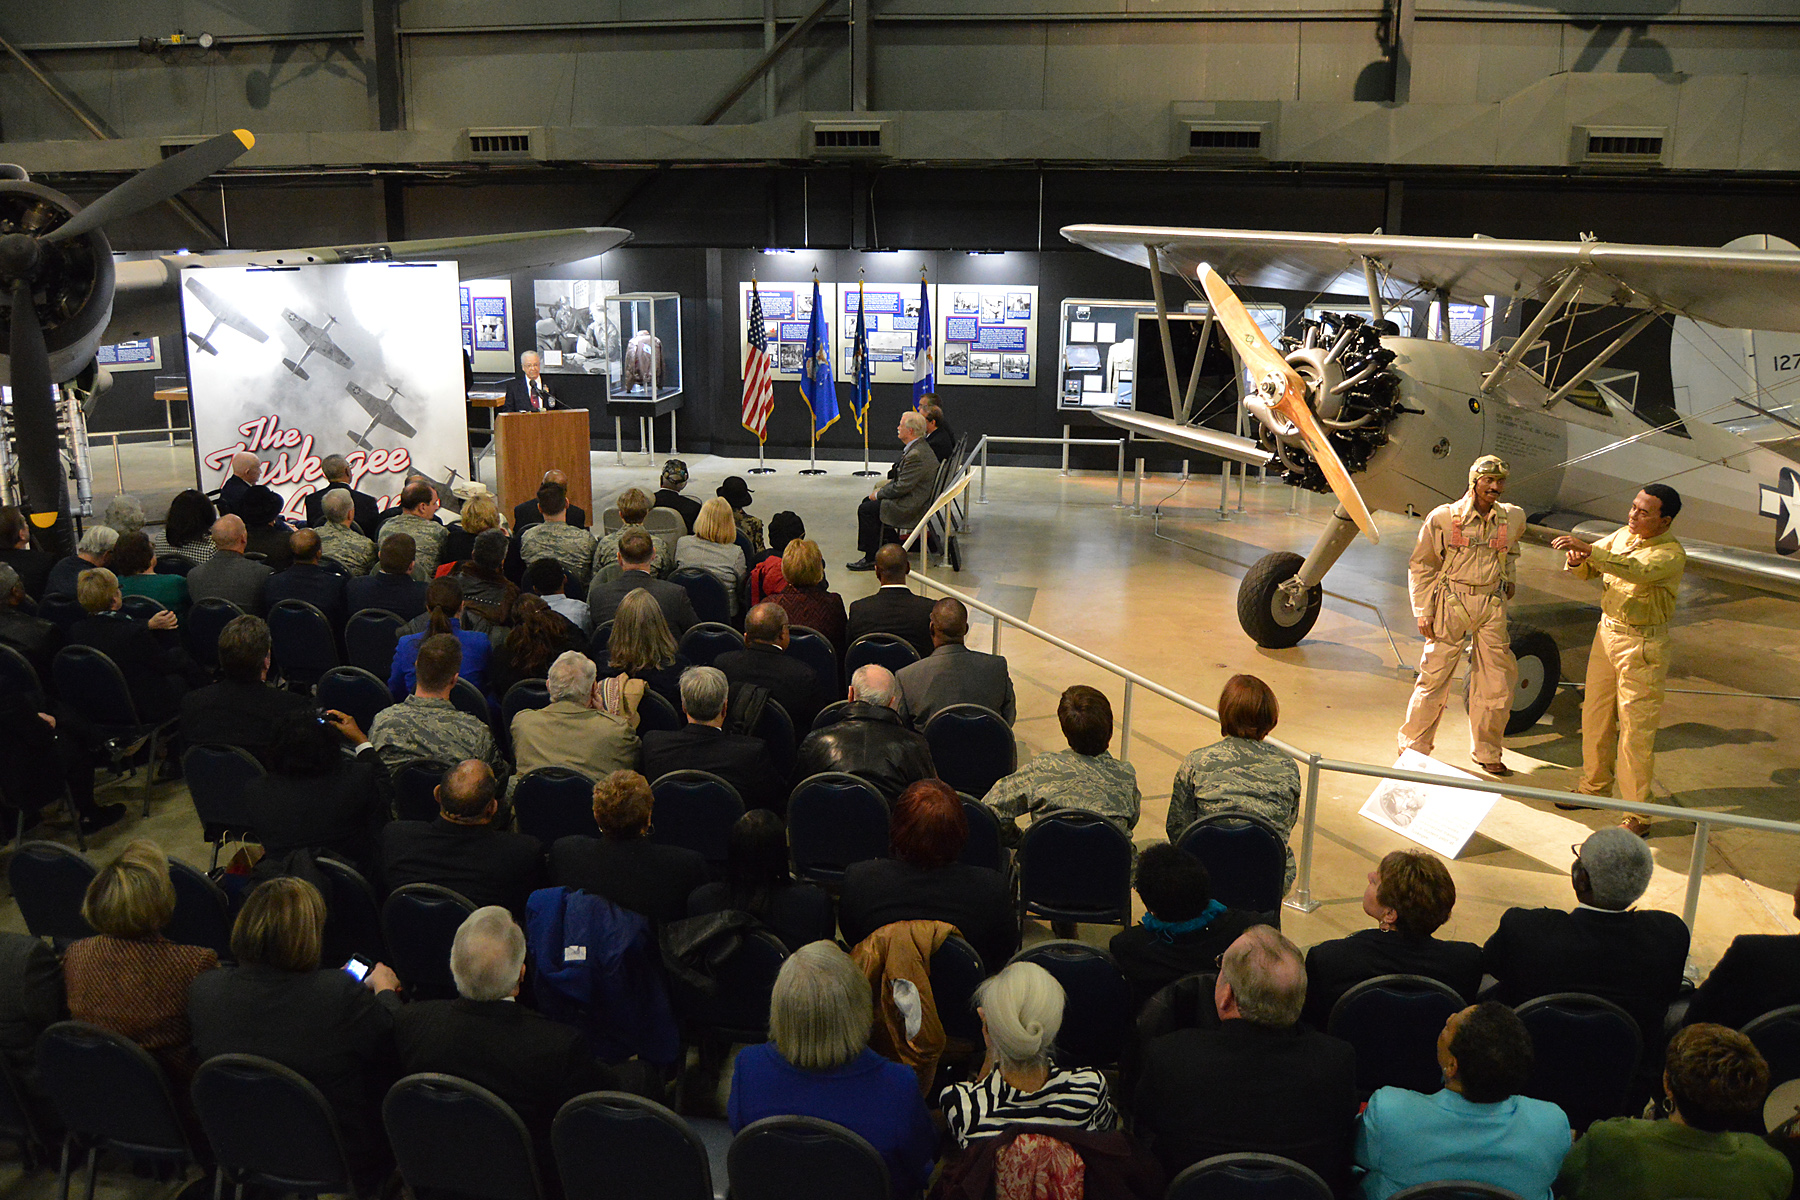 Tuskegee Airmen, families, friends and guests, gathered for the expanded Tuskegee Airmen exhibit opening in the WWII Gallery at the National Museum of the U.S. Air Force on Feb. 10, 2015. (U.S. Air Force photo)